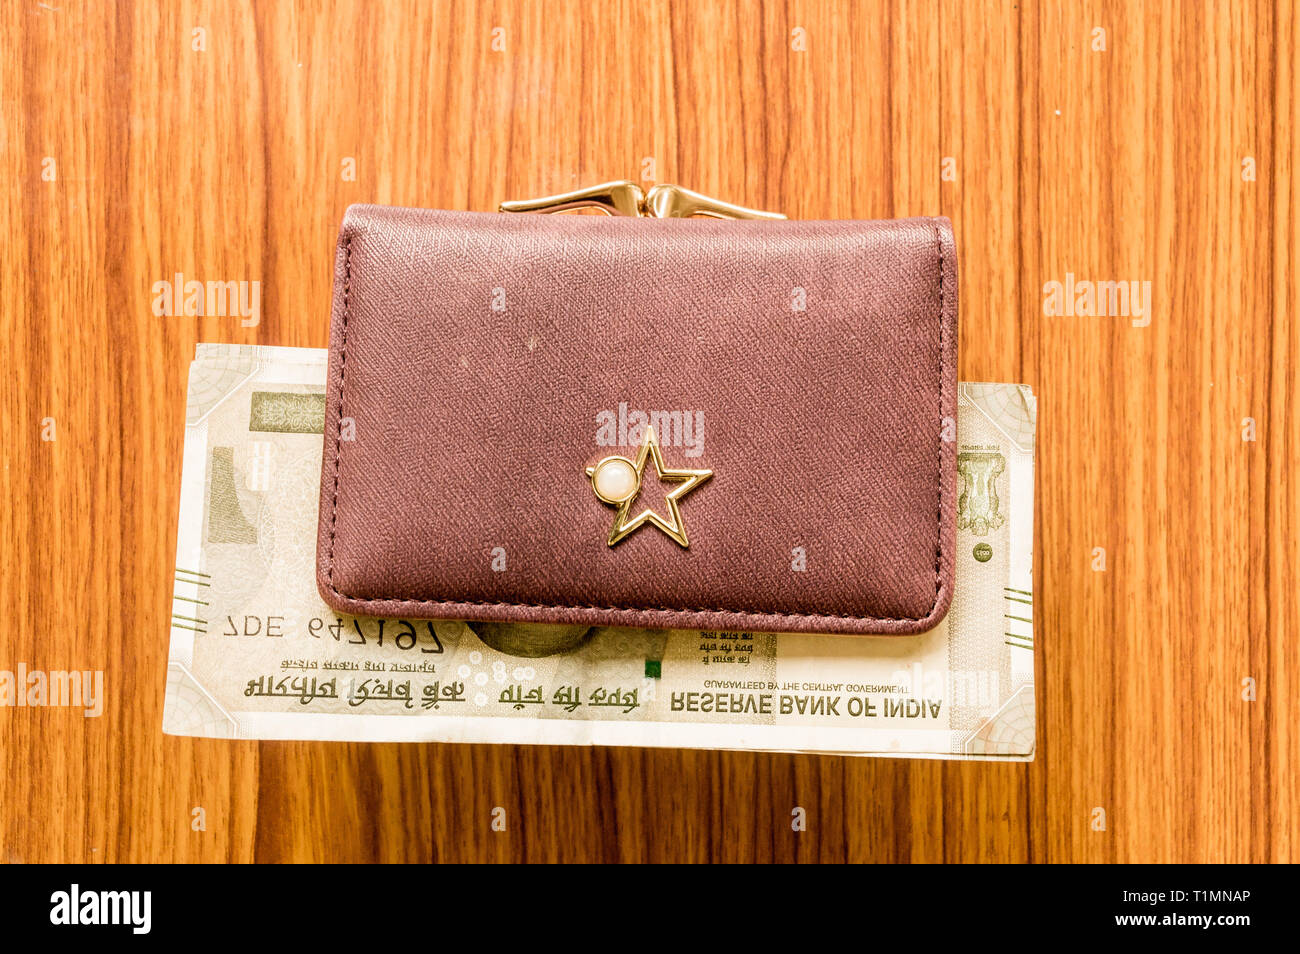 Indian five hundred (500) rupee cash note in brown color wallet leather purse on a wooden table. Business finance economy concept. High angel view wit - Stock Image